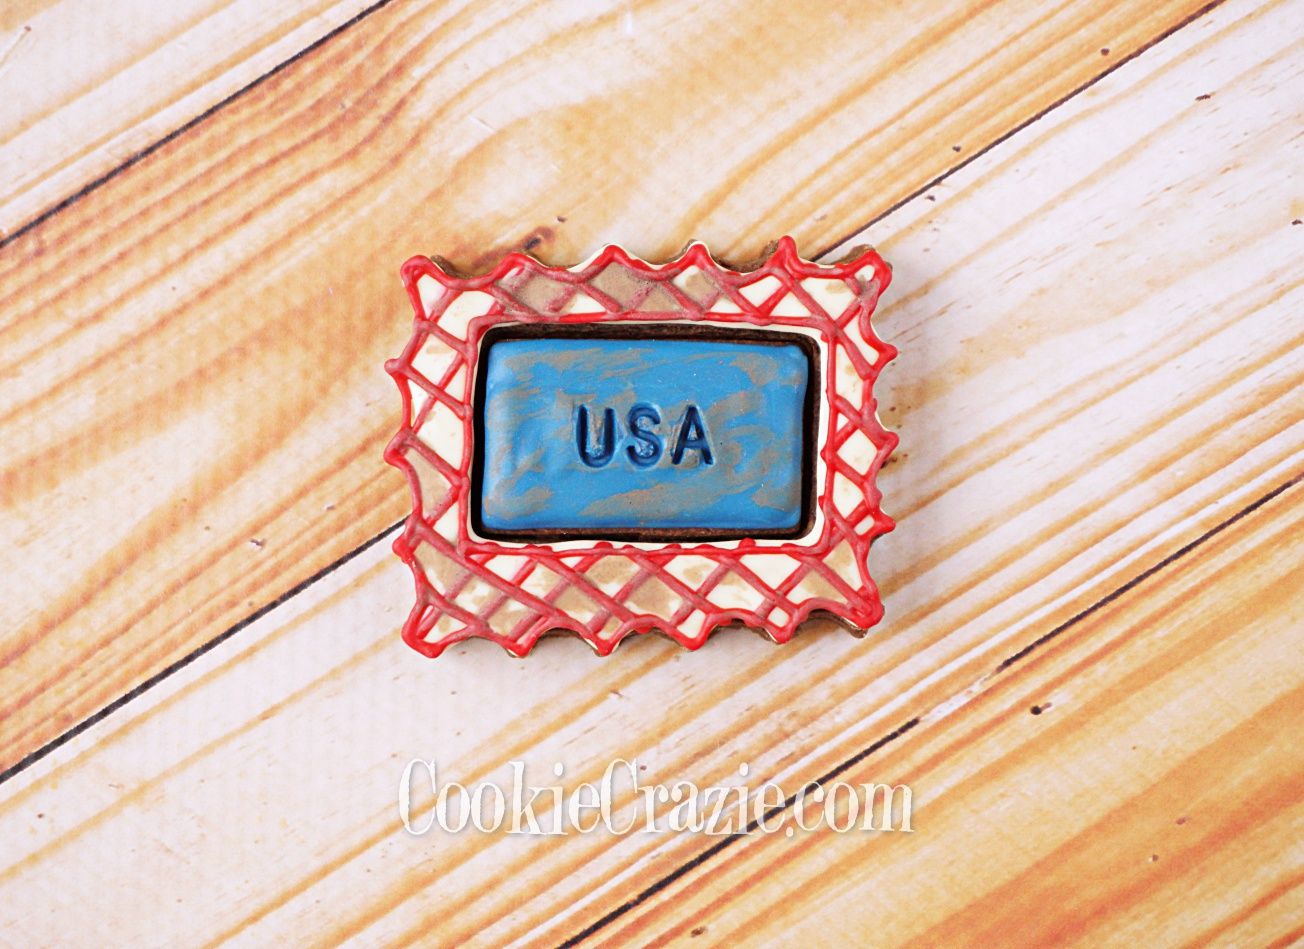 USA Postage Stamp Decorated Sugar Cookie YouTUbe video  HERE